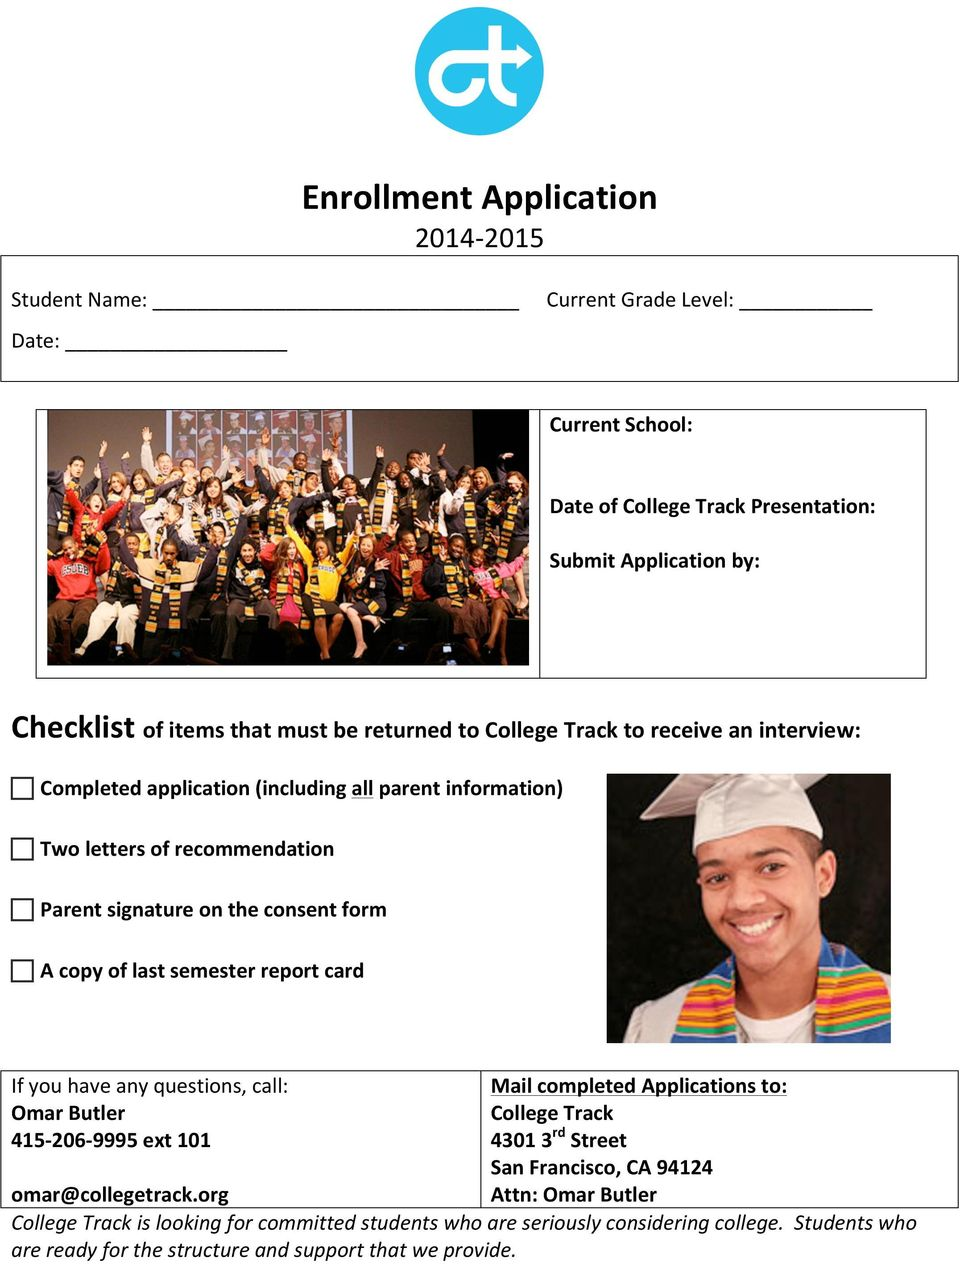 last semester report card If you have any questions, call: Omar Butler 415-206- 9995 ext 101 Mail completed Applications to: College Track 4301 3 rd Street San Francisco, CA 94124 Attn: